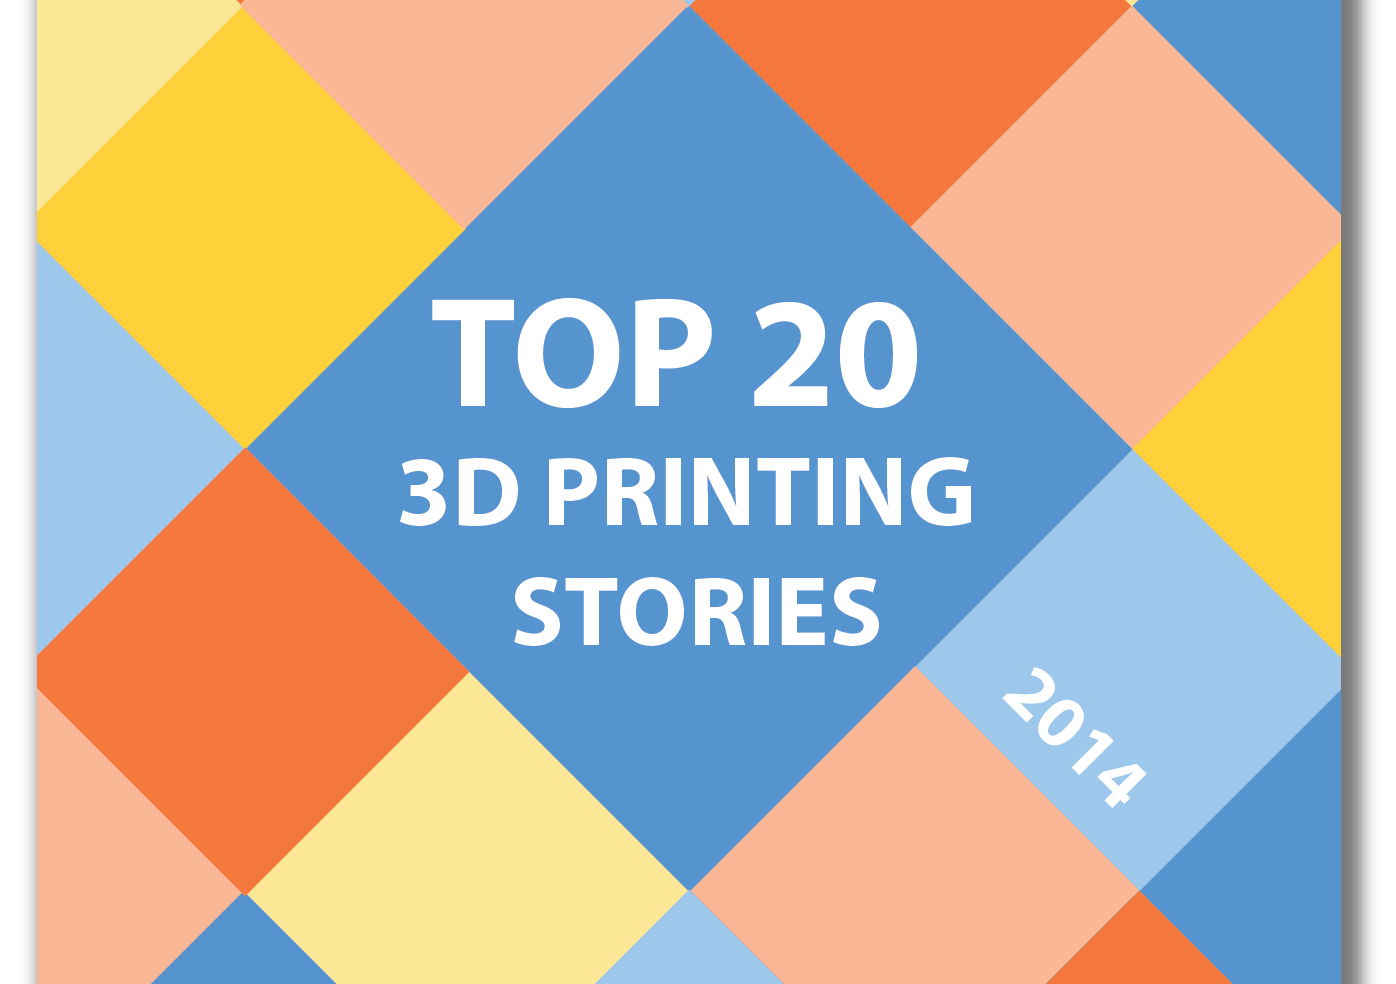 DOWNLOAD THE EBOOK OF THE BEST 3D PRINTING STORIES OF THE YEAR CREATED THROUGH SCULPTEO'S SERVICES